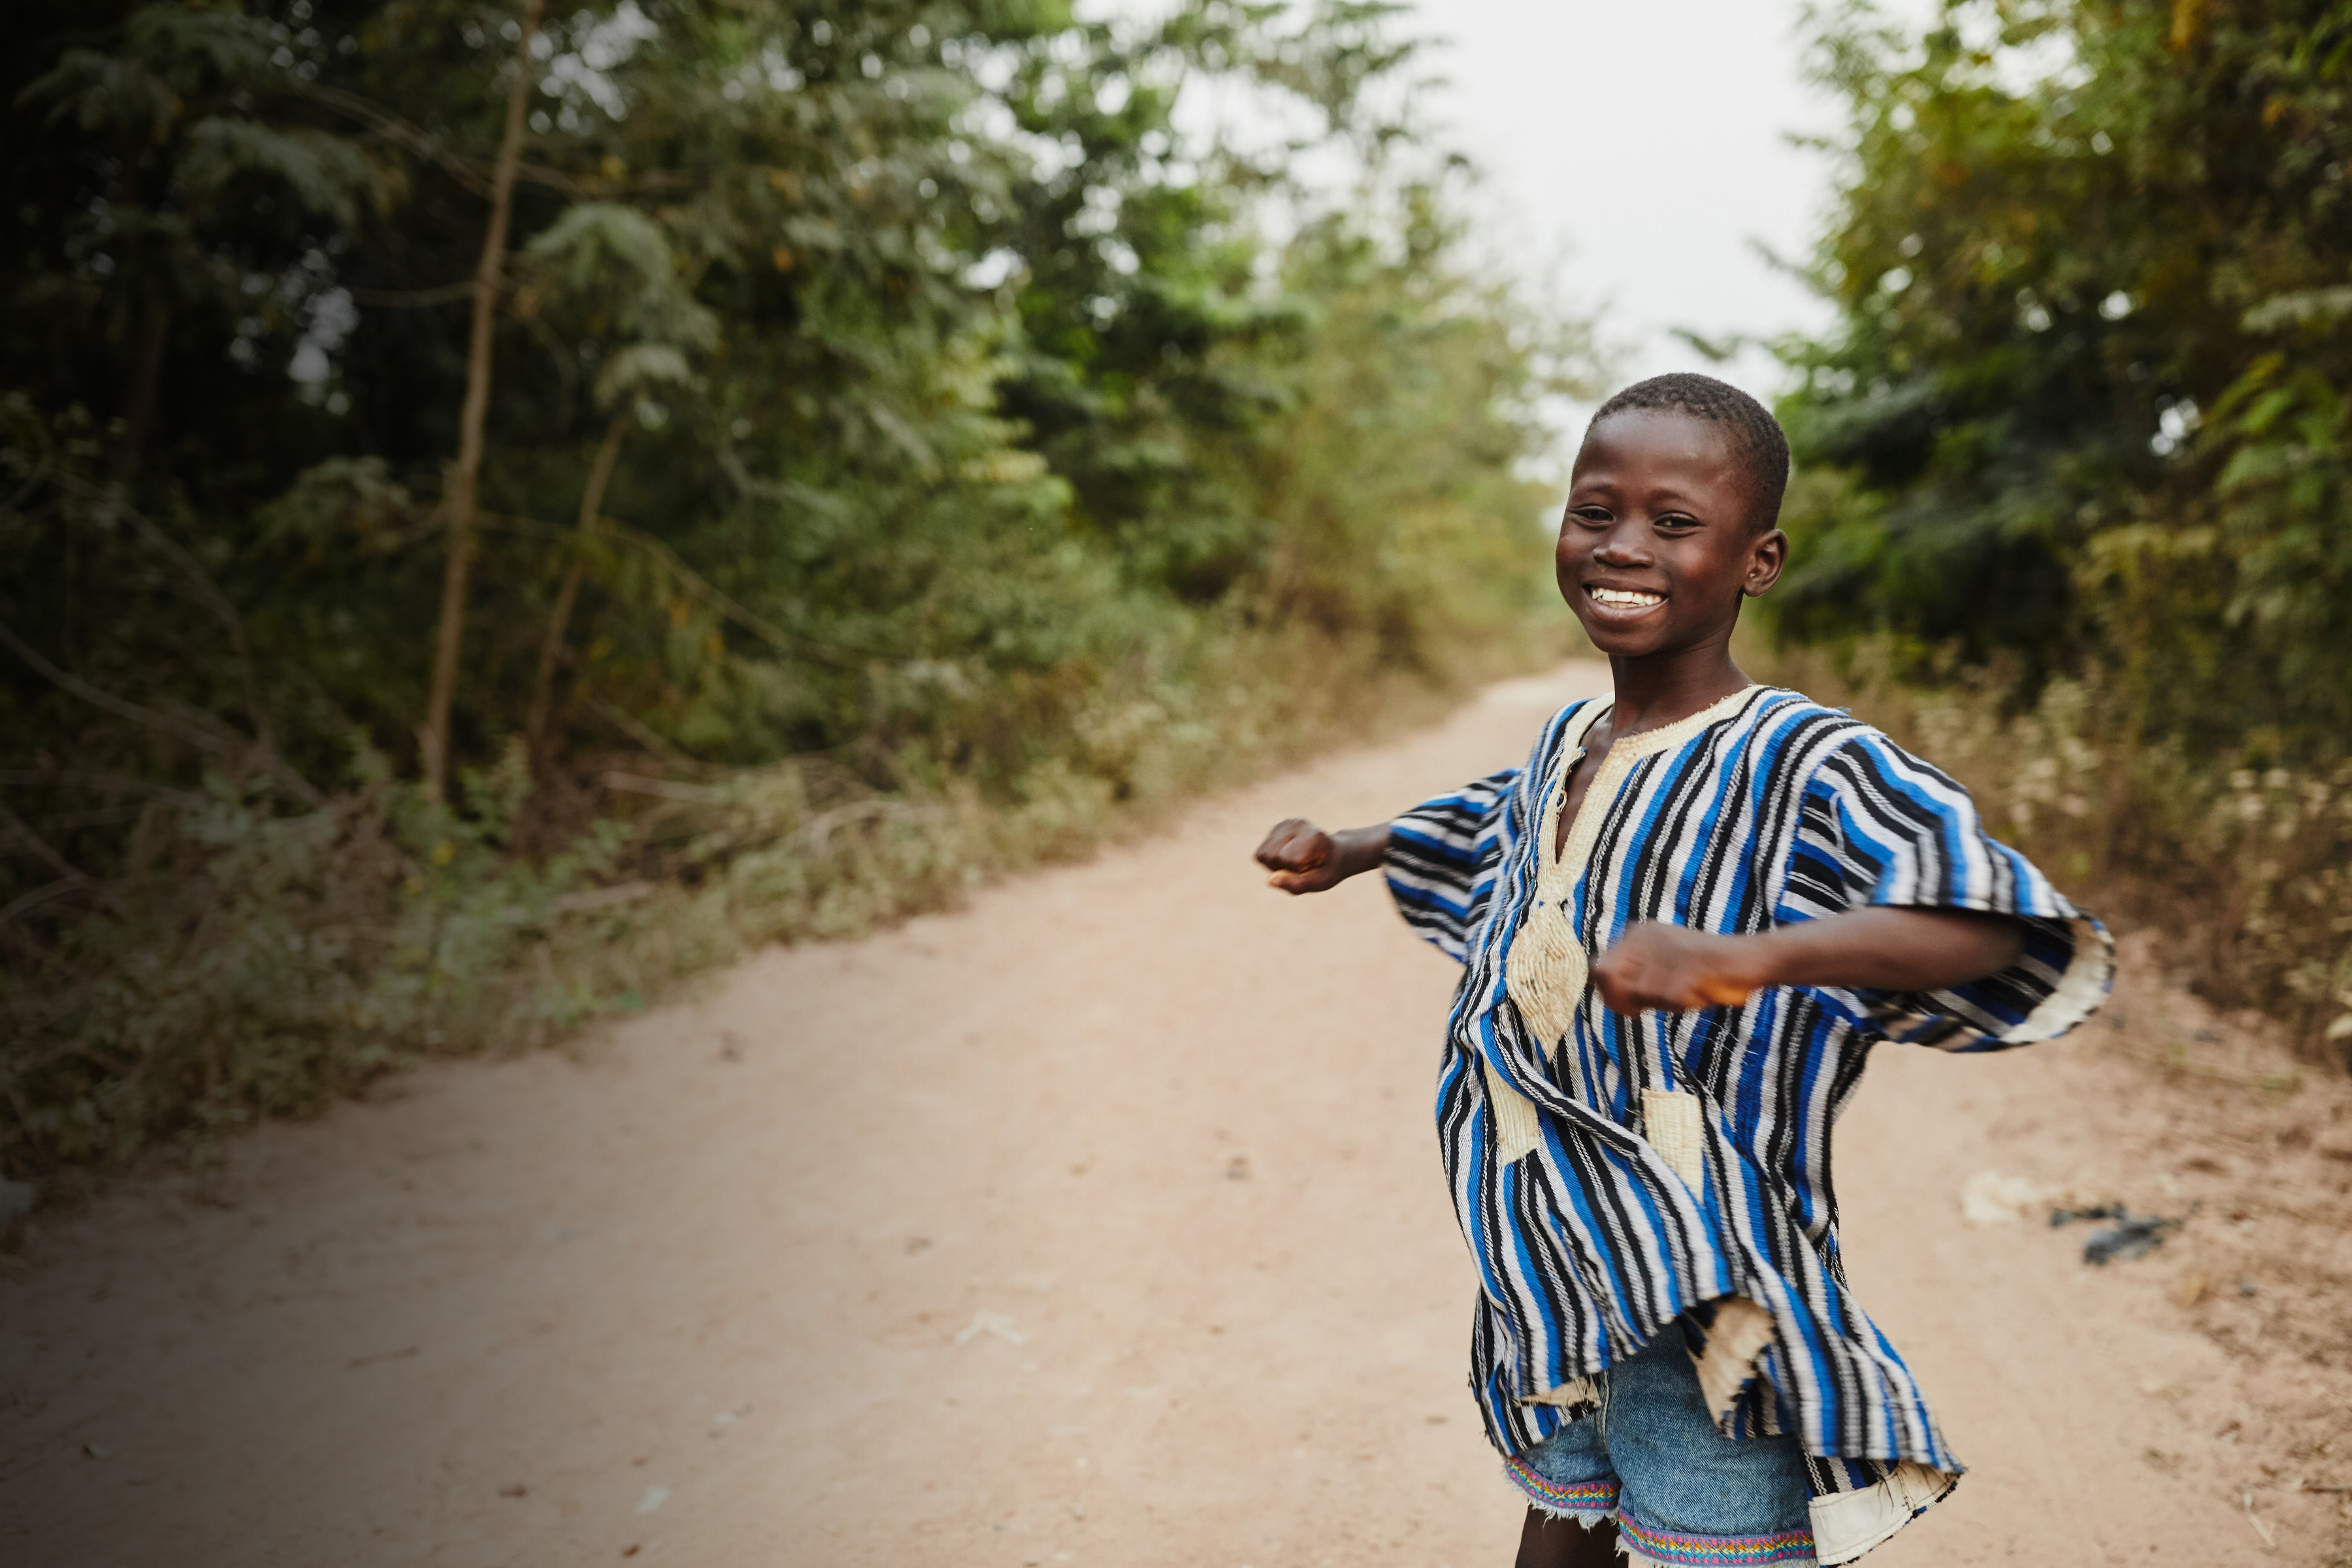 A Boy in Ghana on a road